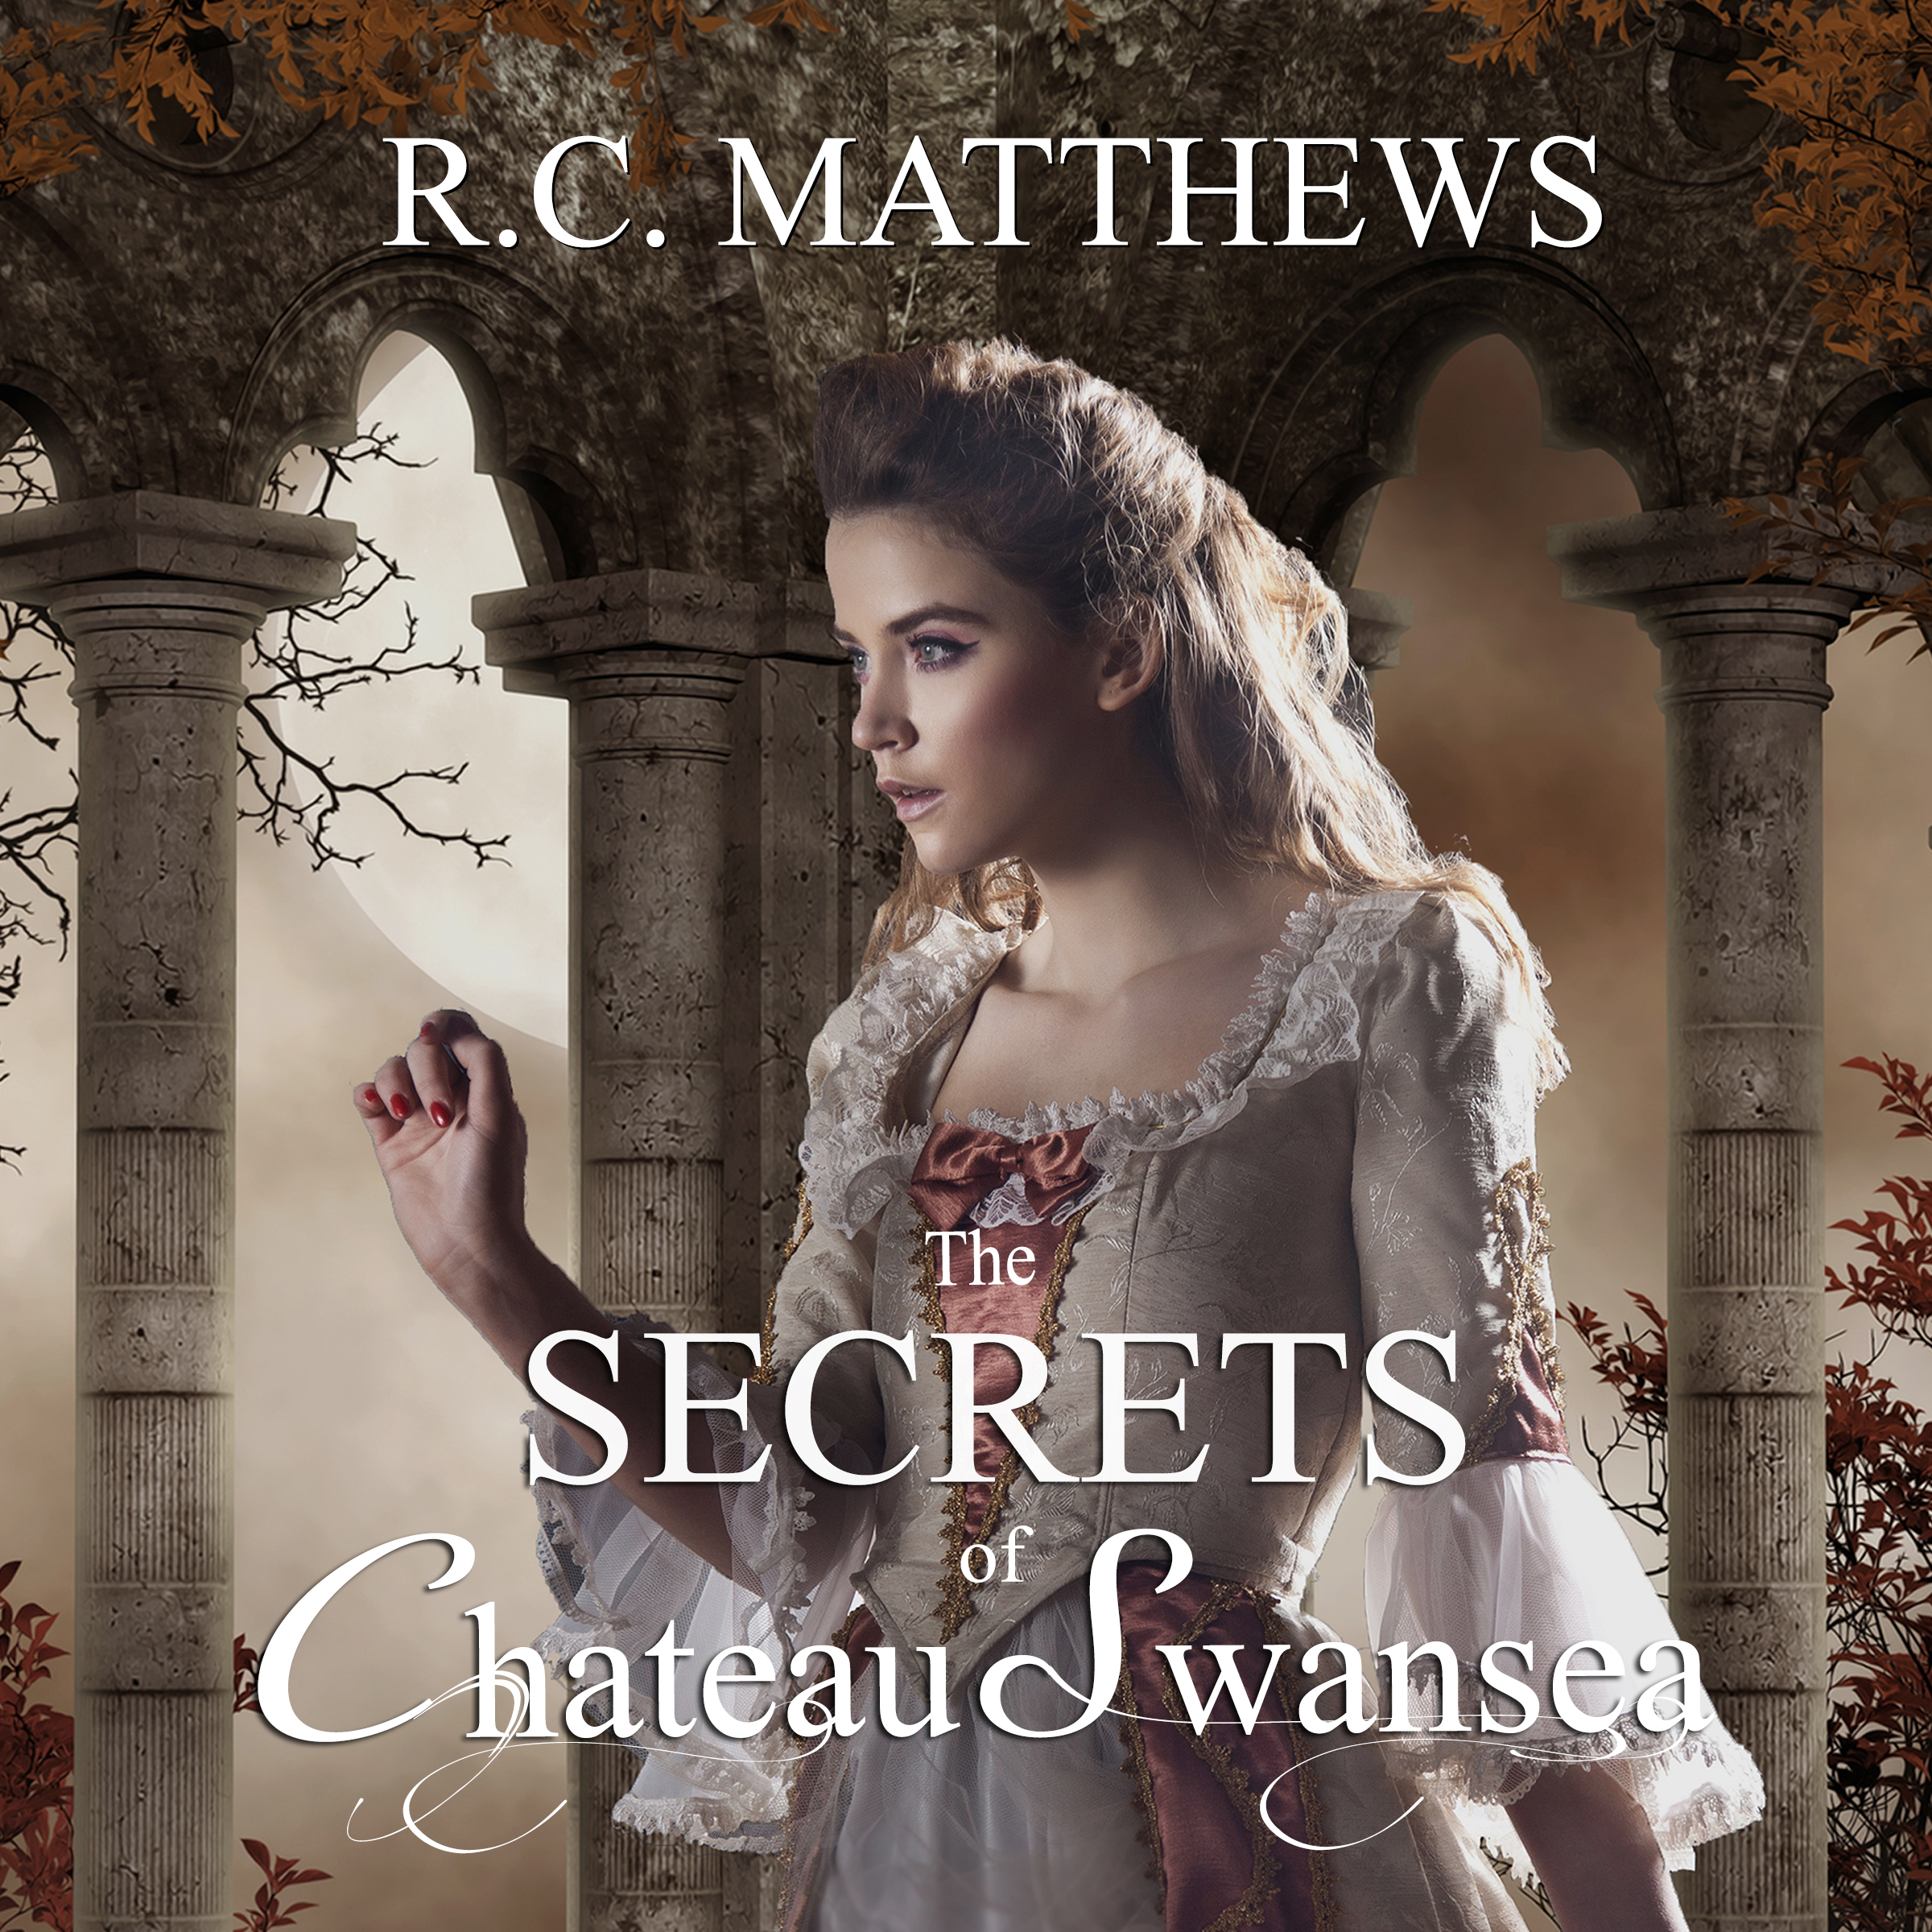 The Secrets of Chateau Swansea audiobook by R.C. Matthews